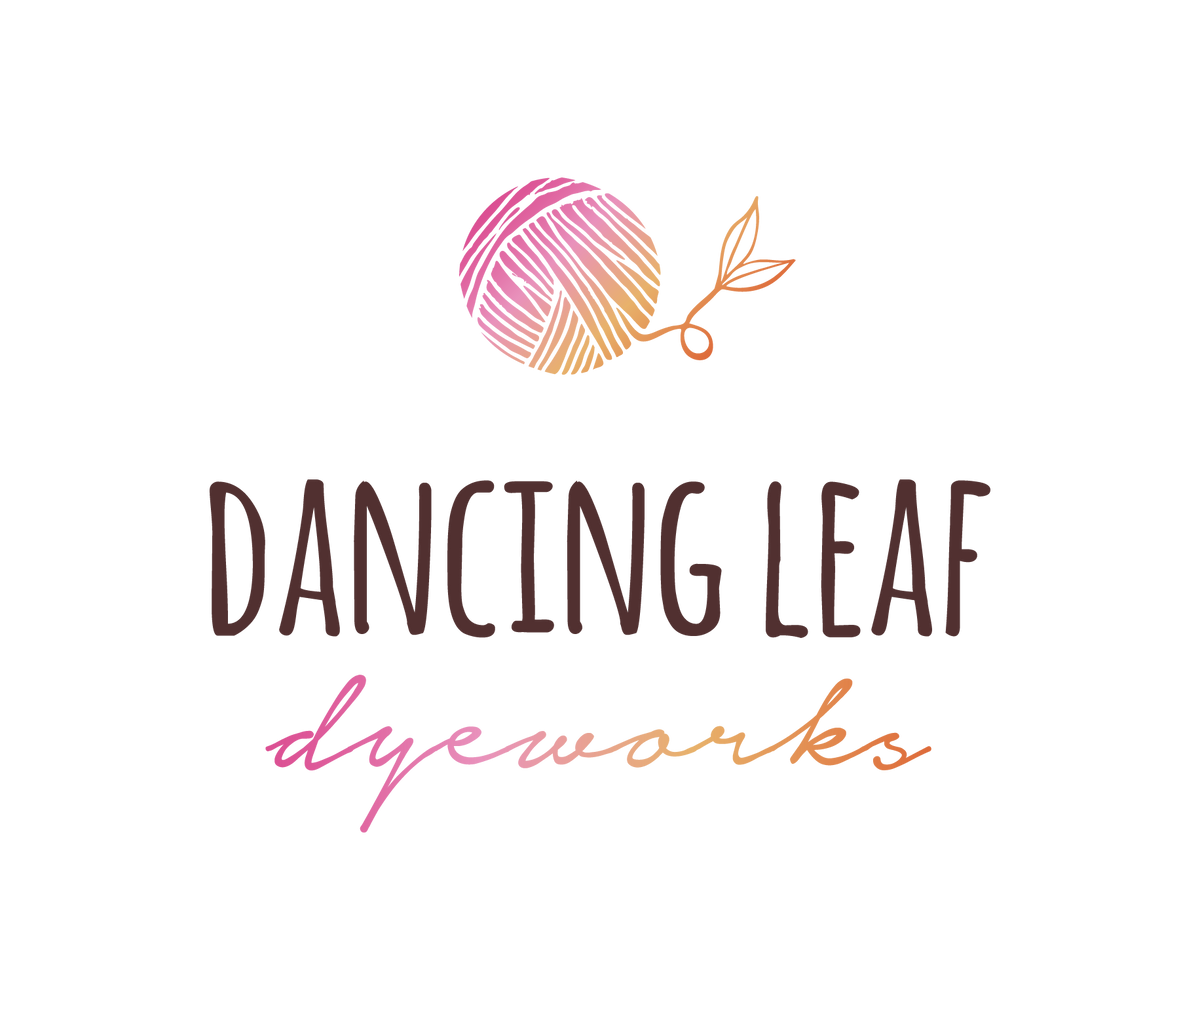 Dancing Leaf Farm